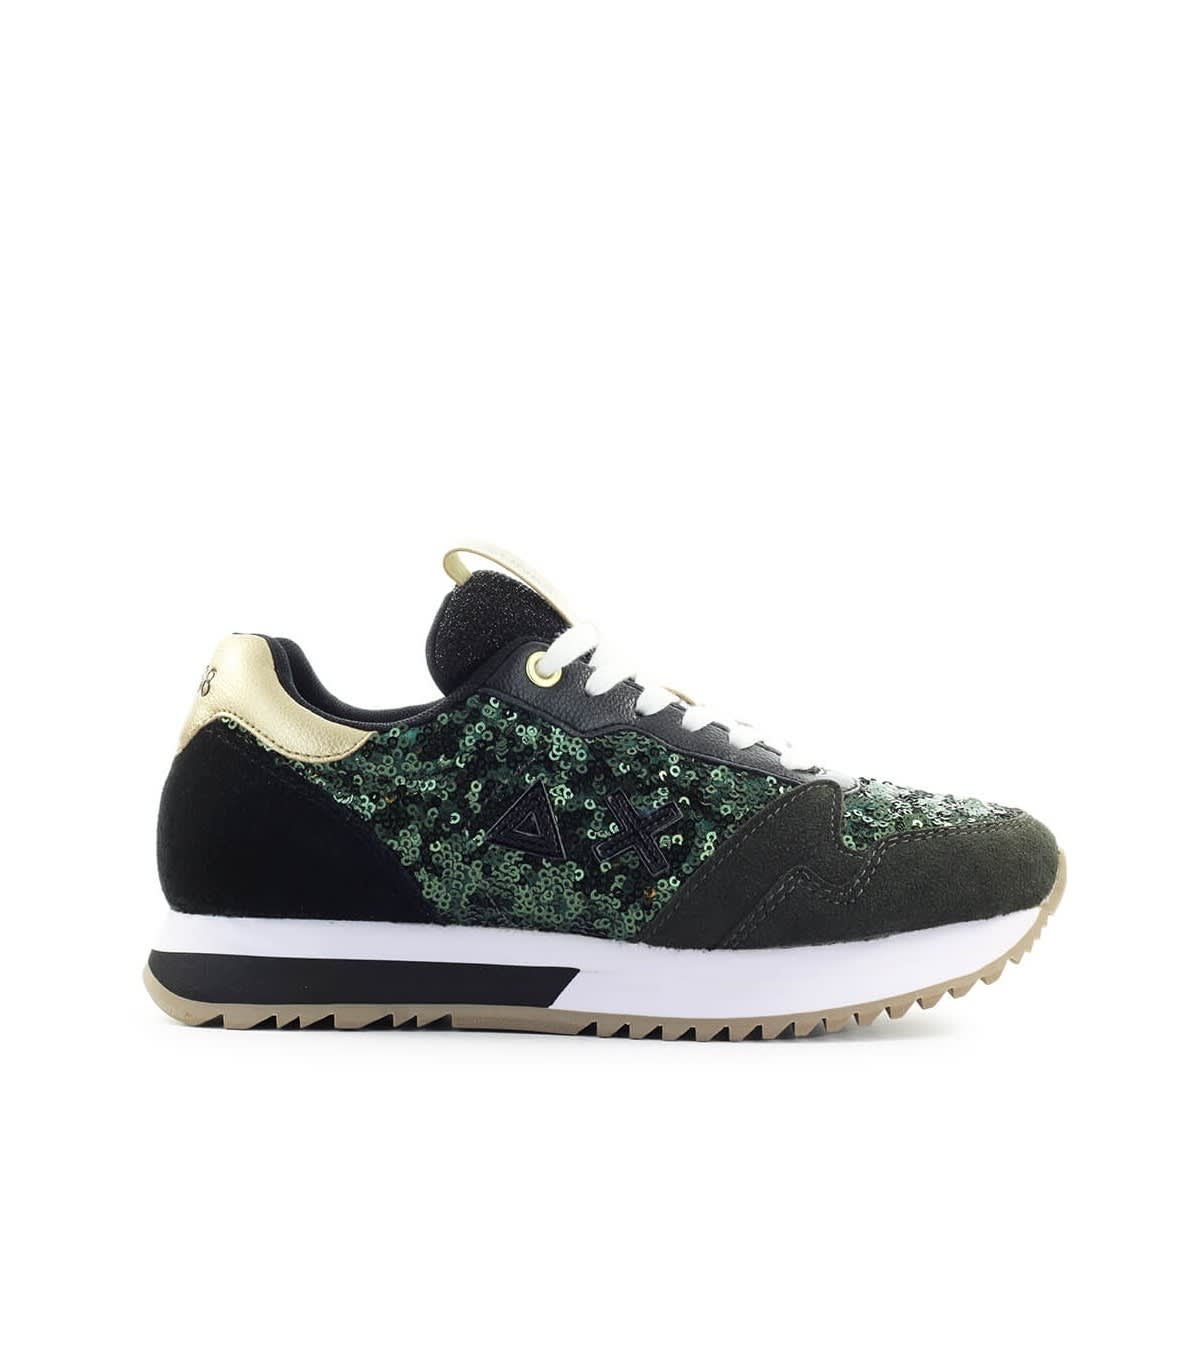 Sun 68 SUN68 KELLY SOLID PAILLETTES MILITARY GREEN SNEAKER